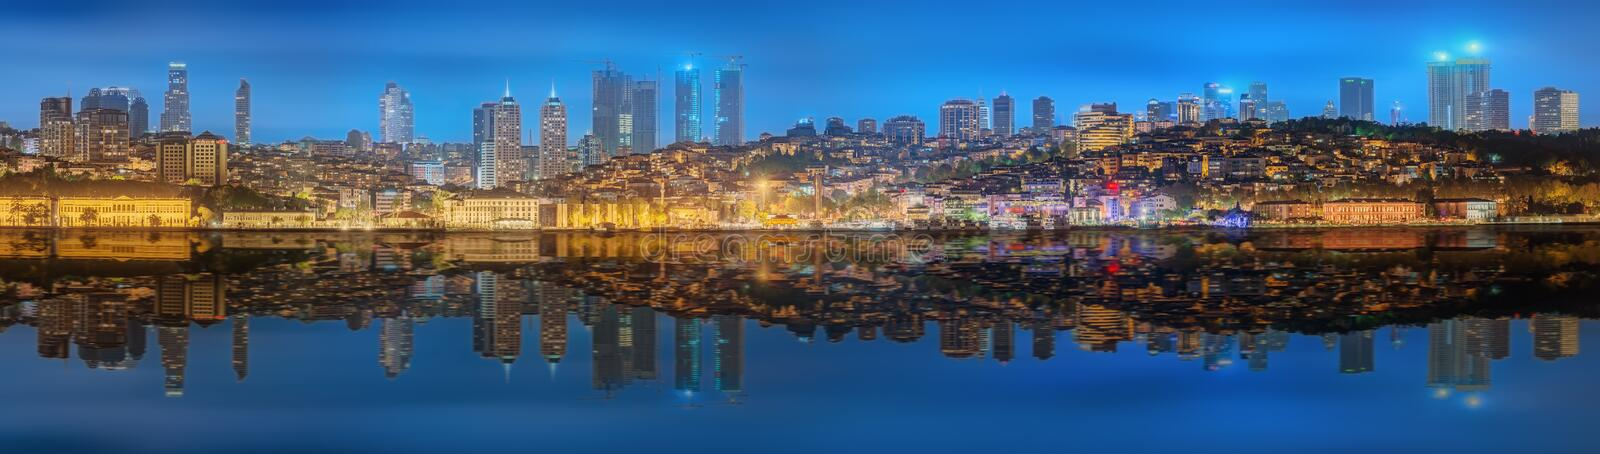 Panorama os Istanbul and Bosporus at night. Turkey royalty free stock photography